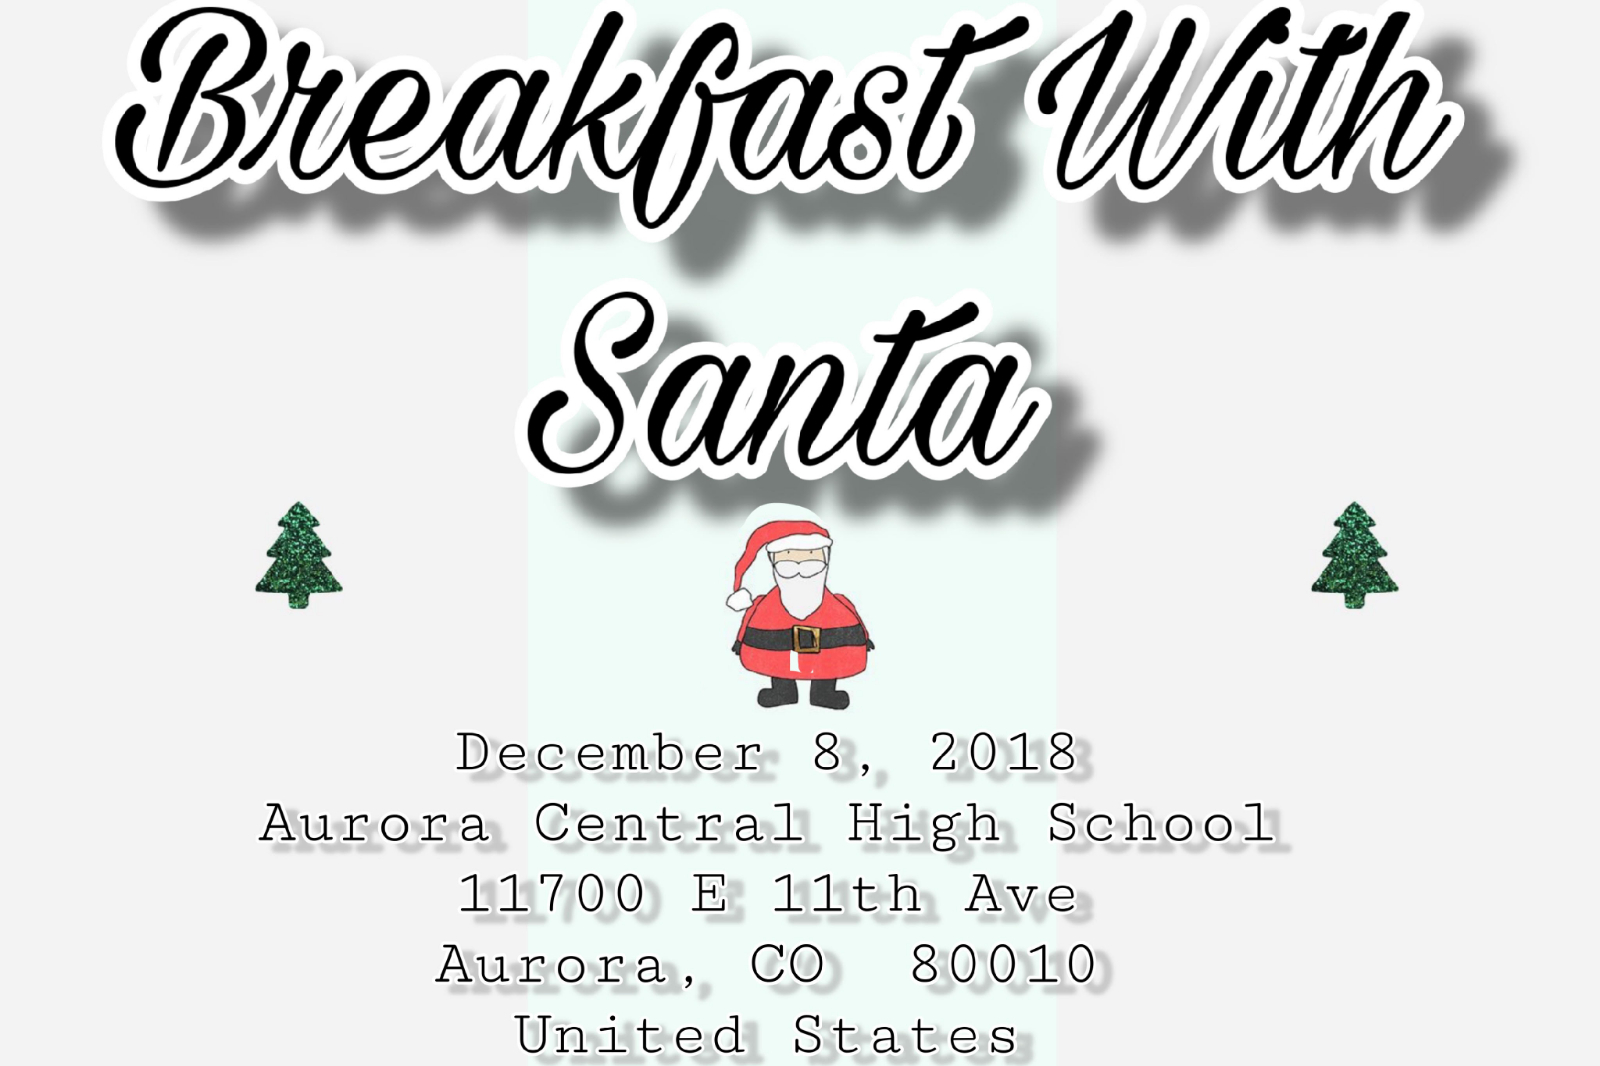 Breakfast with Santa (presented by ACHS Student Council)